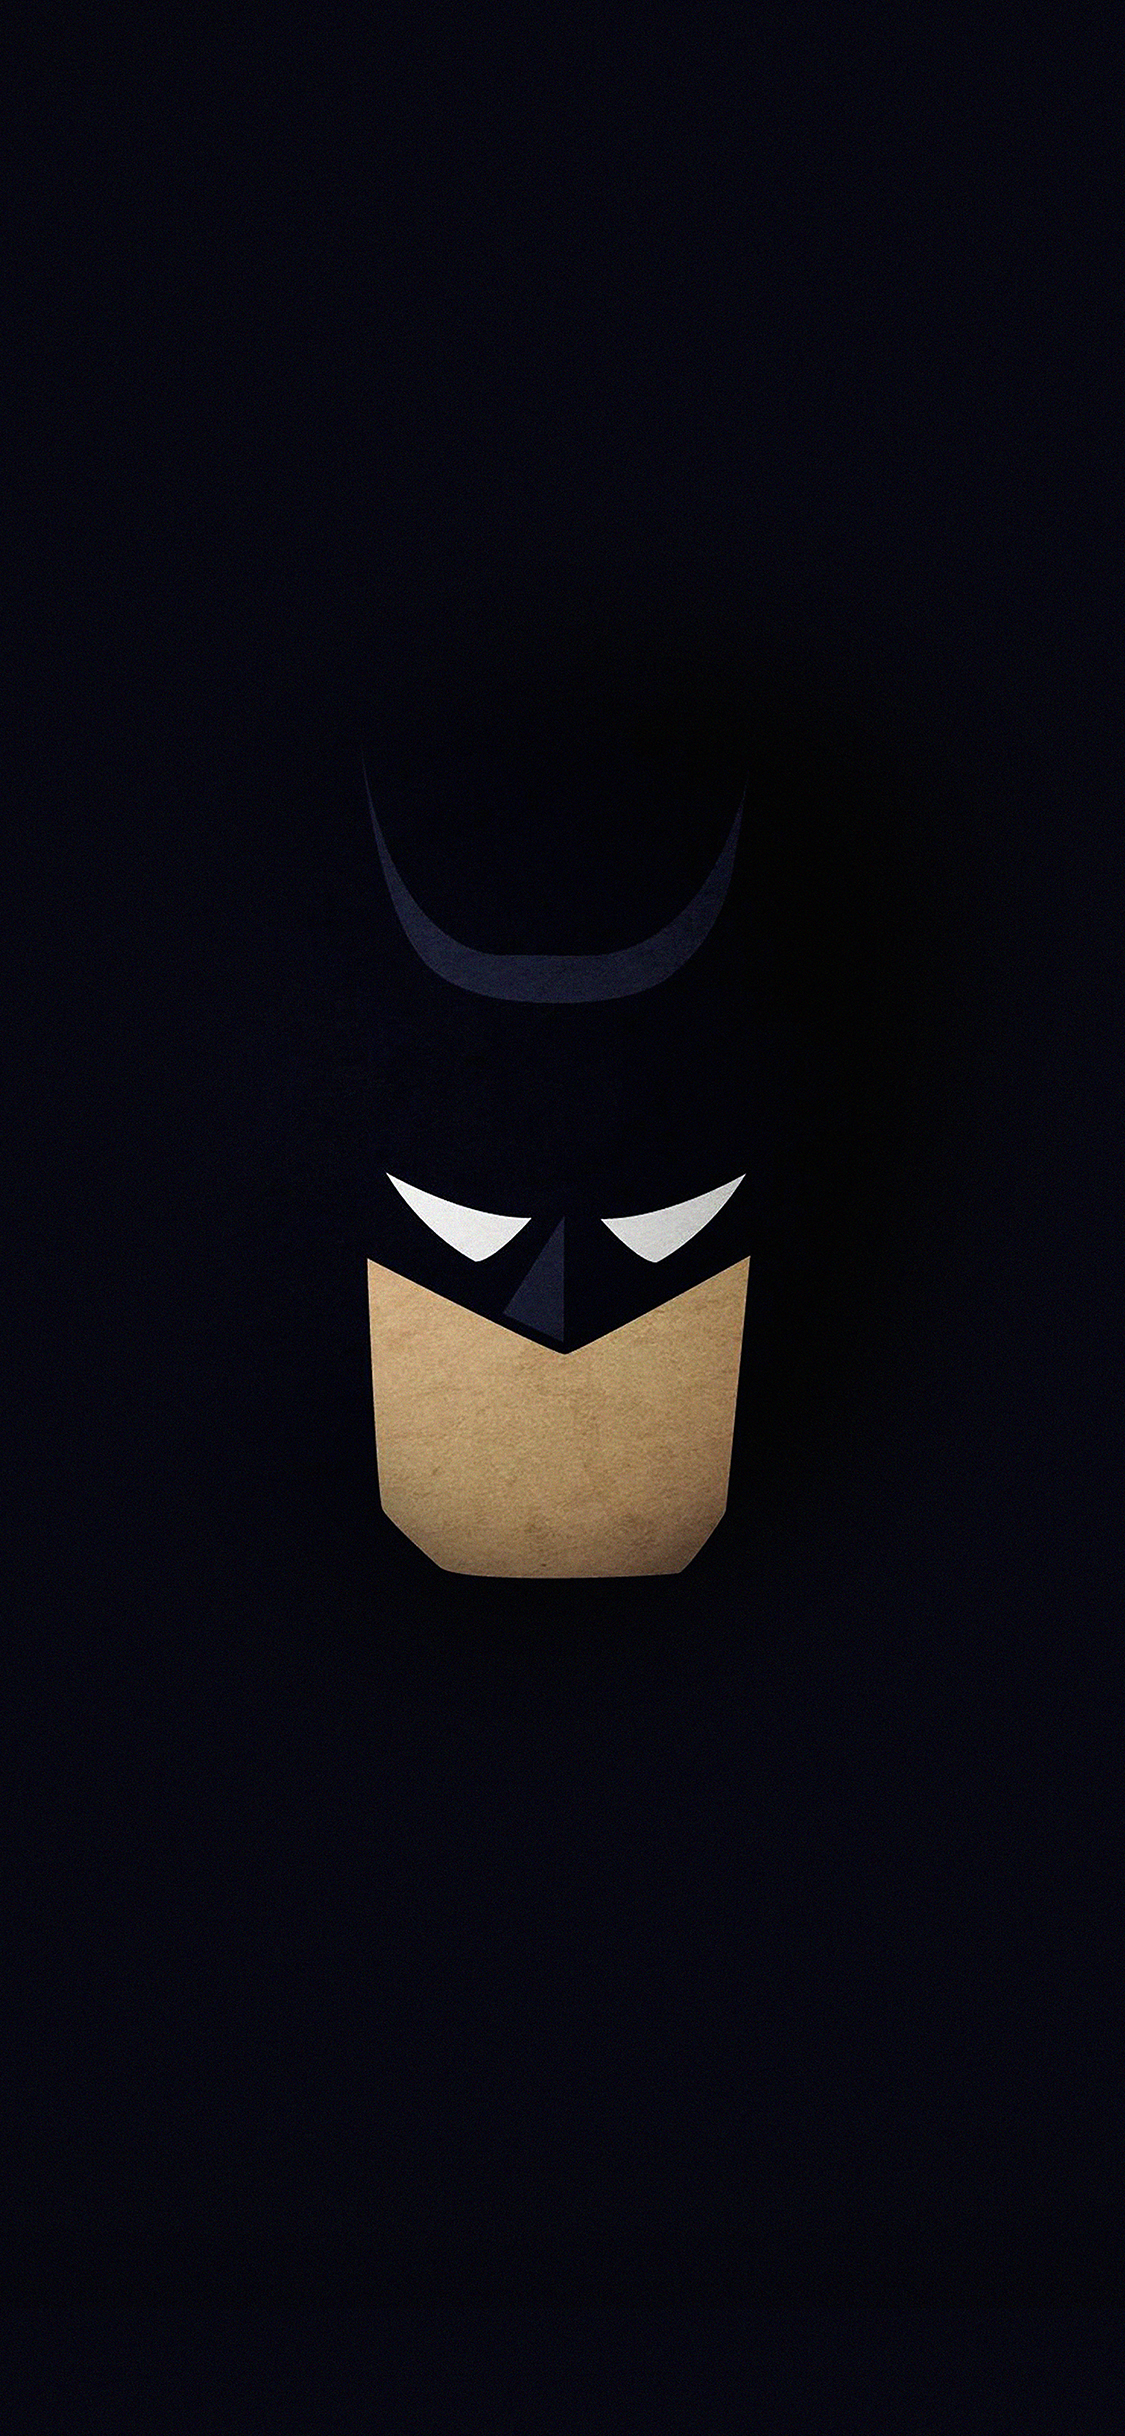 Batman Animated Wallpaper For Iphone , HD Wallpaper & Backgrounds